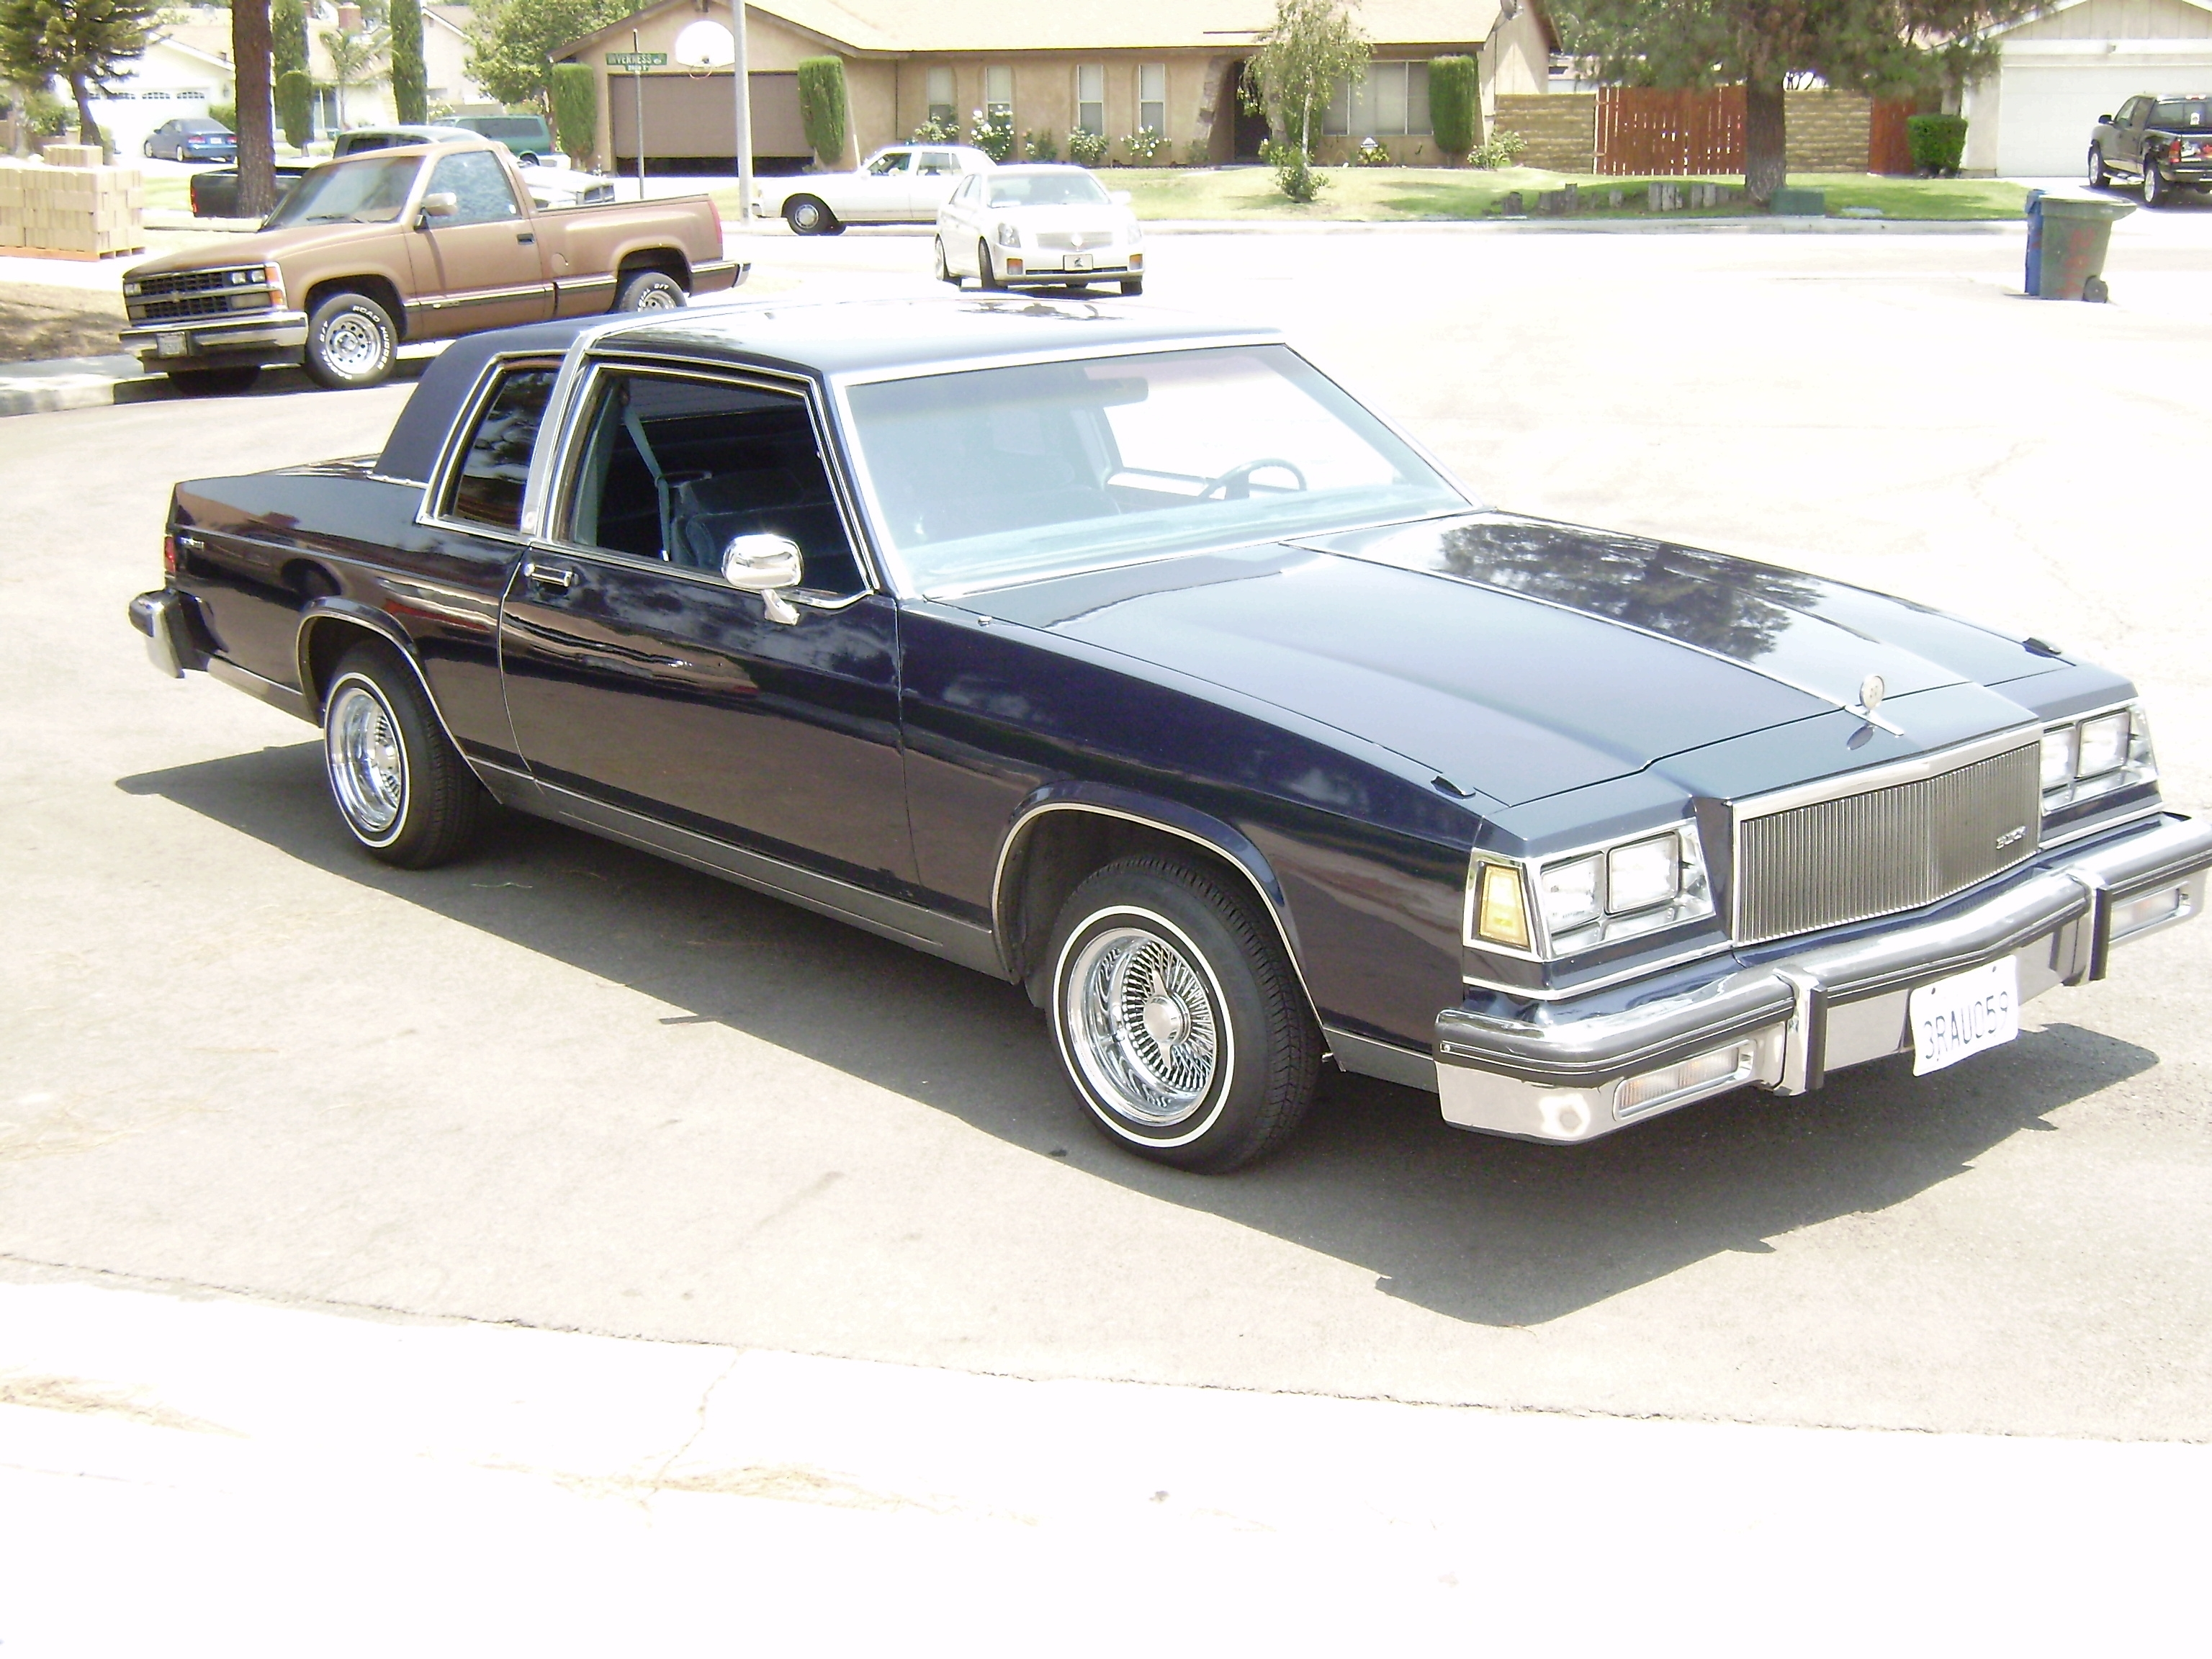 Original on 1985 Buick Lesabre Collectors Edition